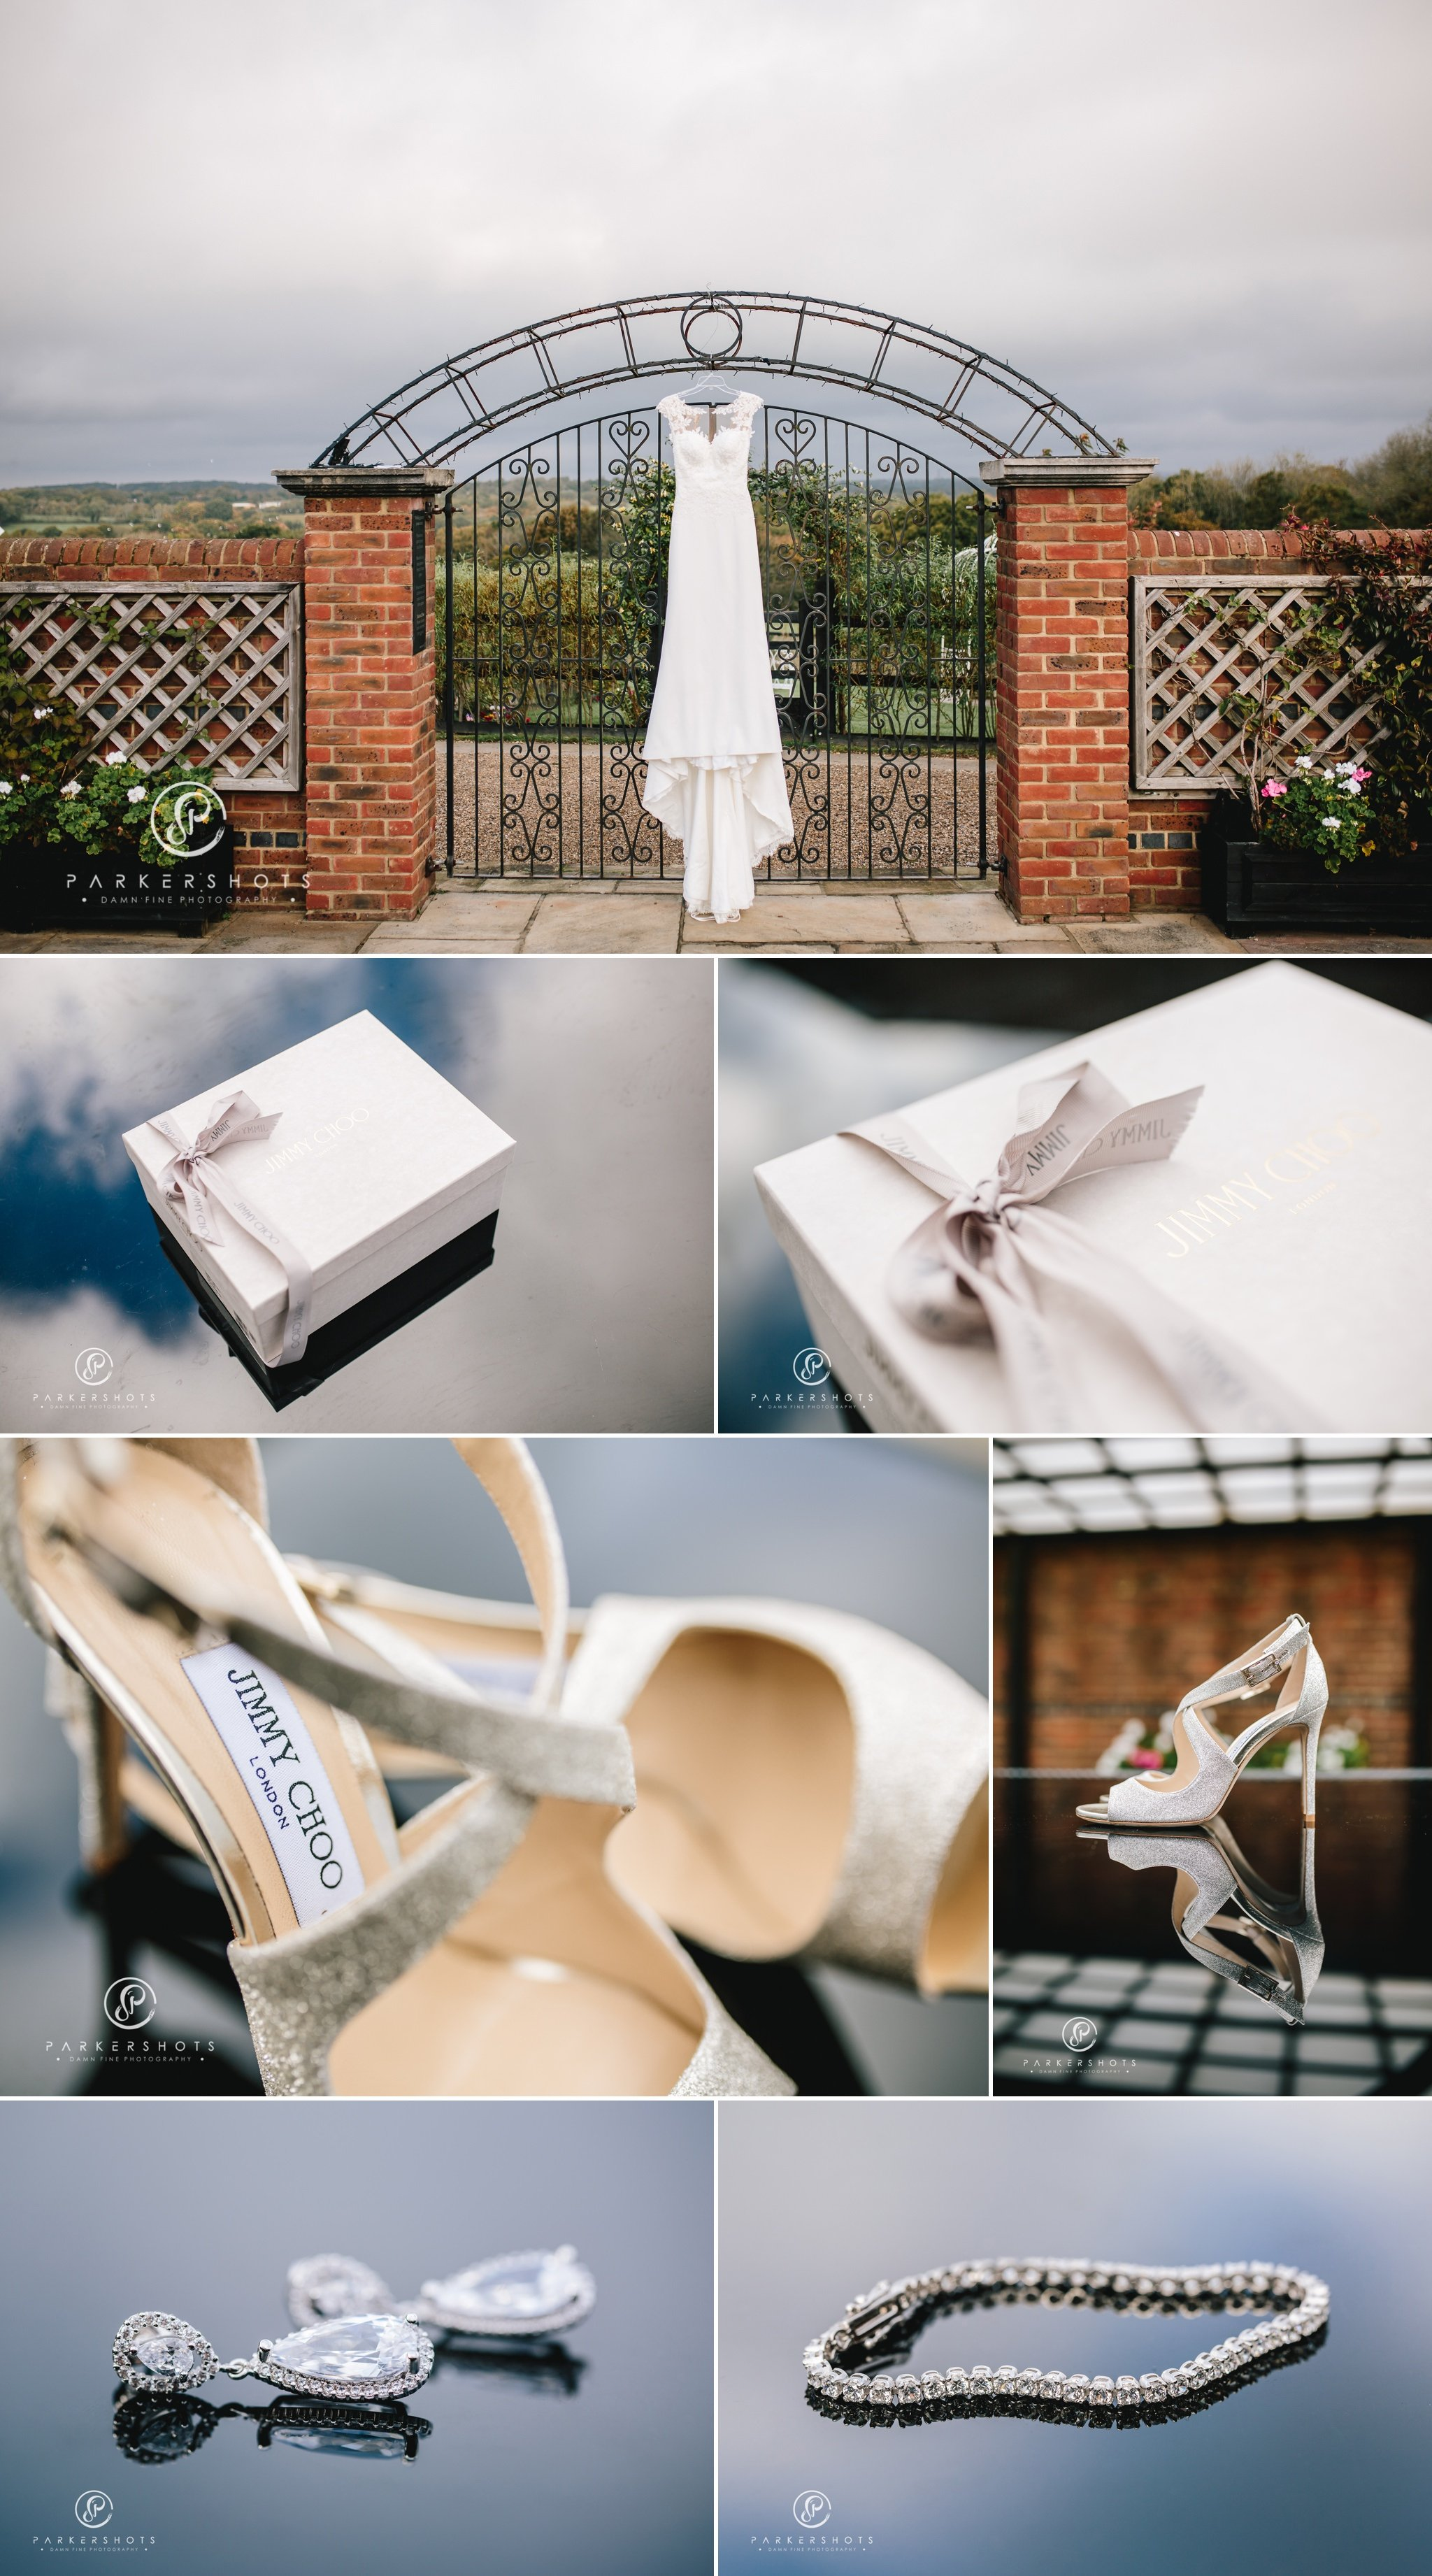 Bridal details at Blackstock Country Estate